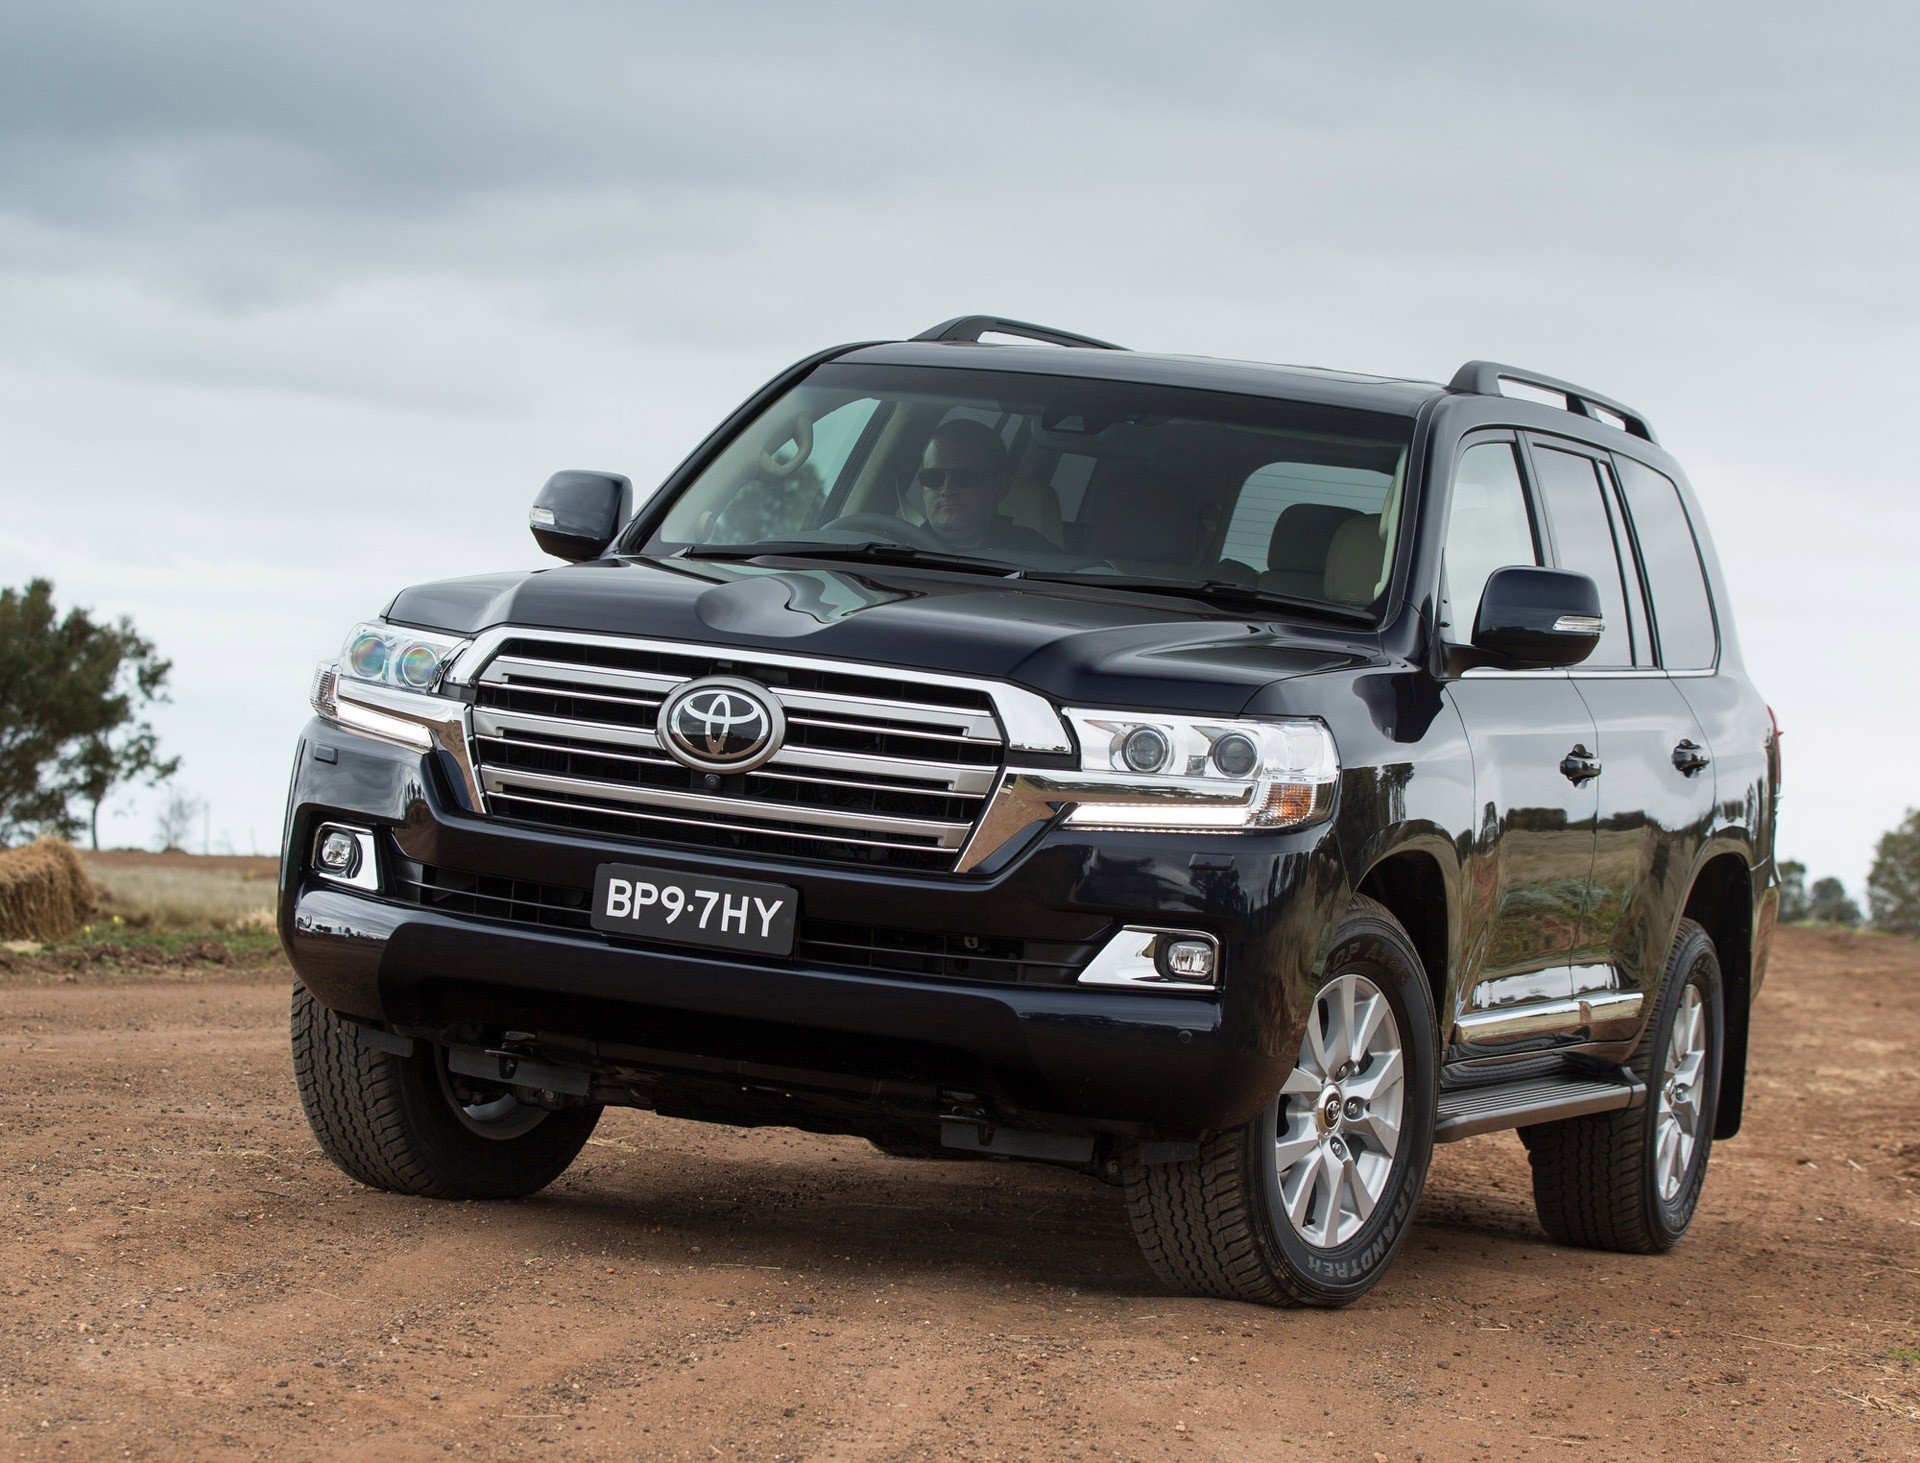 Toyota Land Cruiser 200 фото 2016